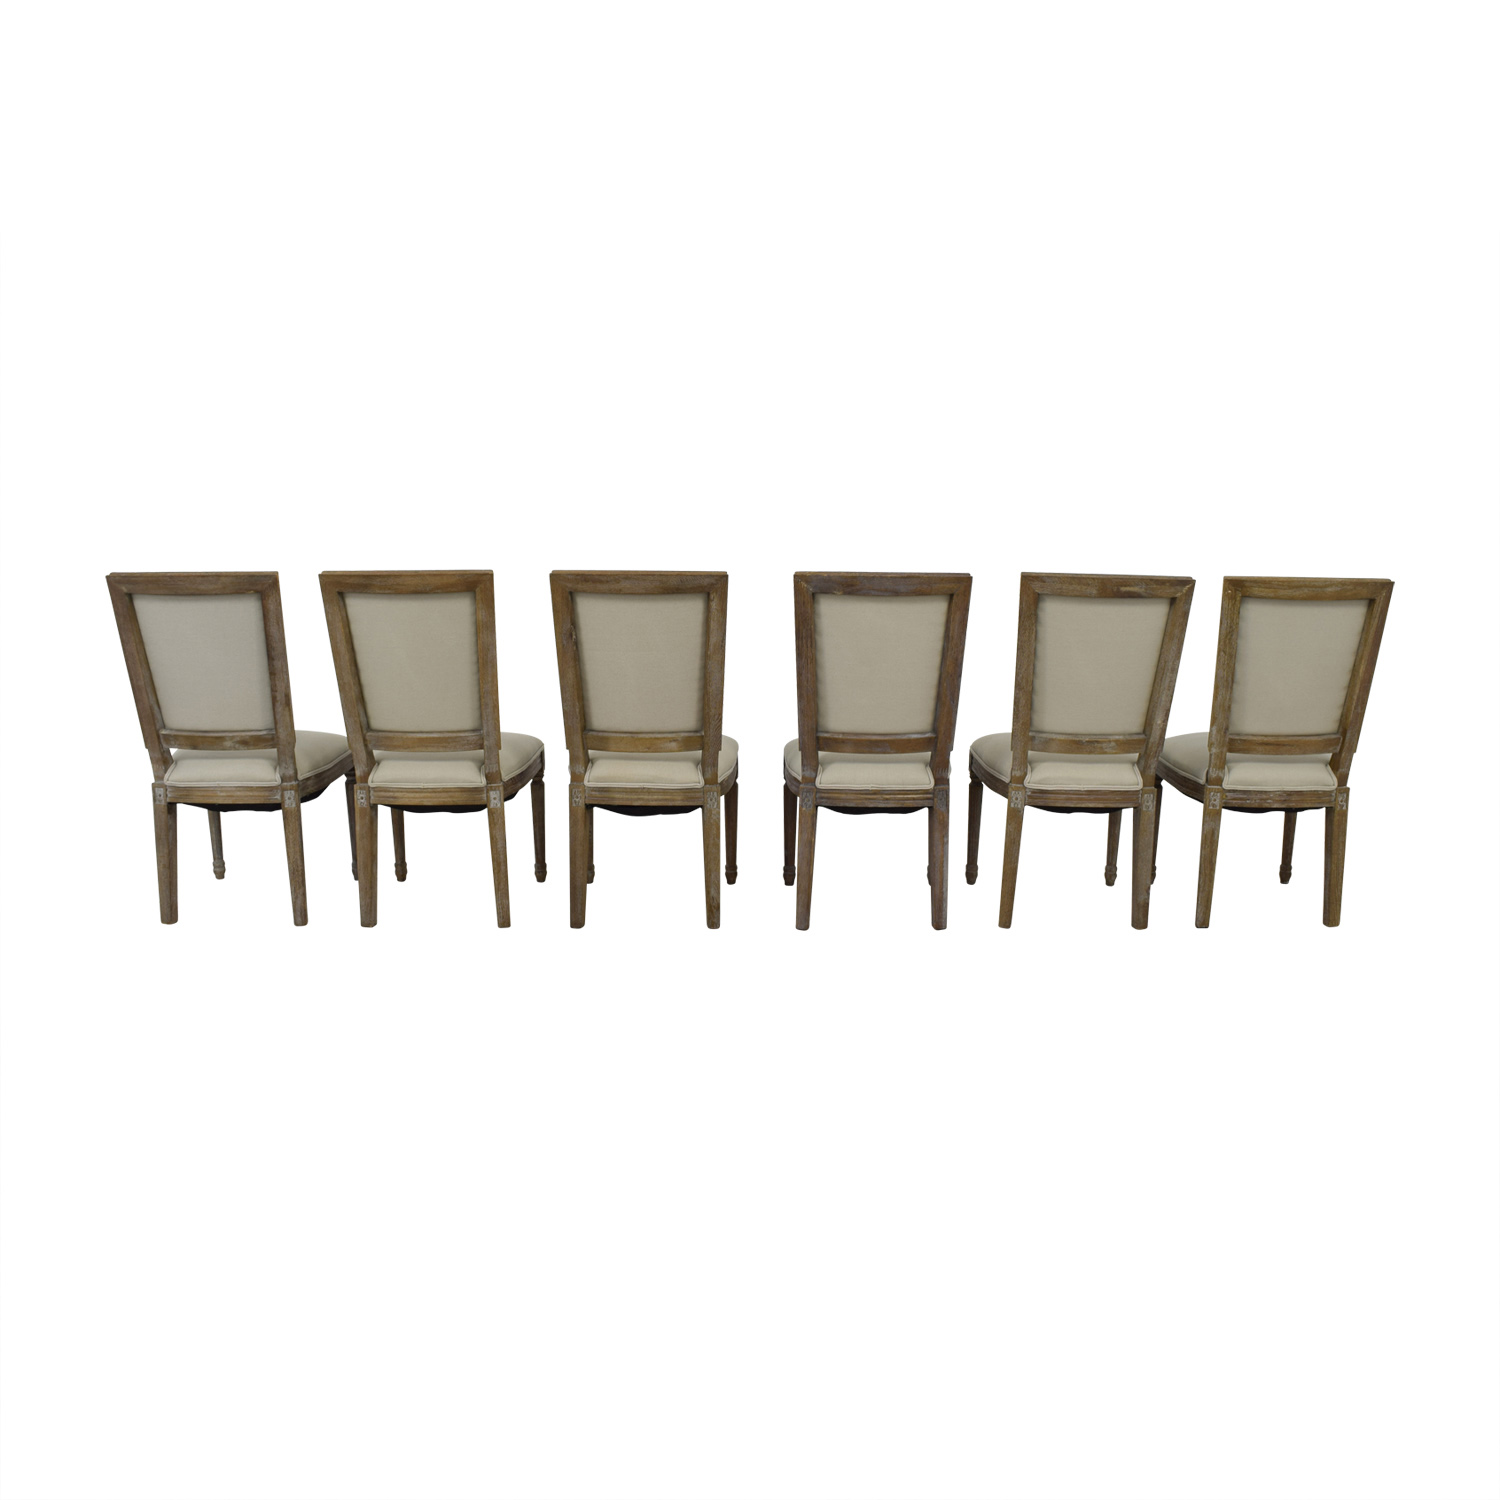 buy Arhaus Adele Grey Upholstered Dining Chairs Arhaus Dining Chairs